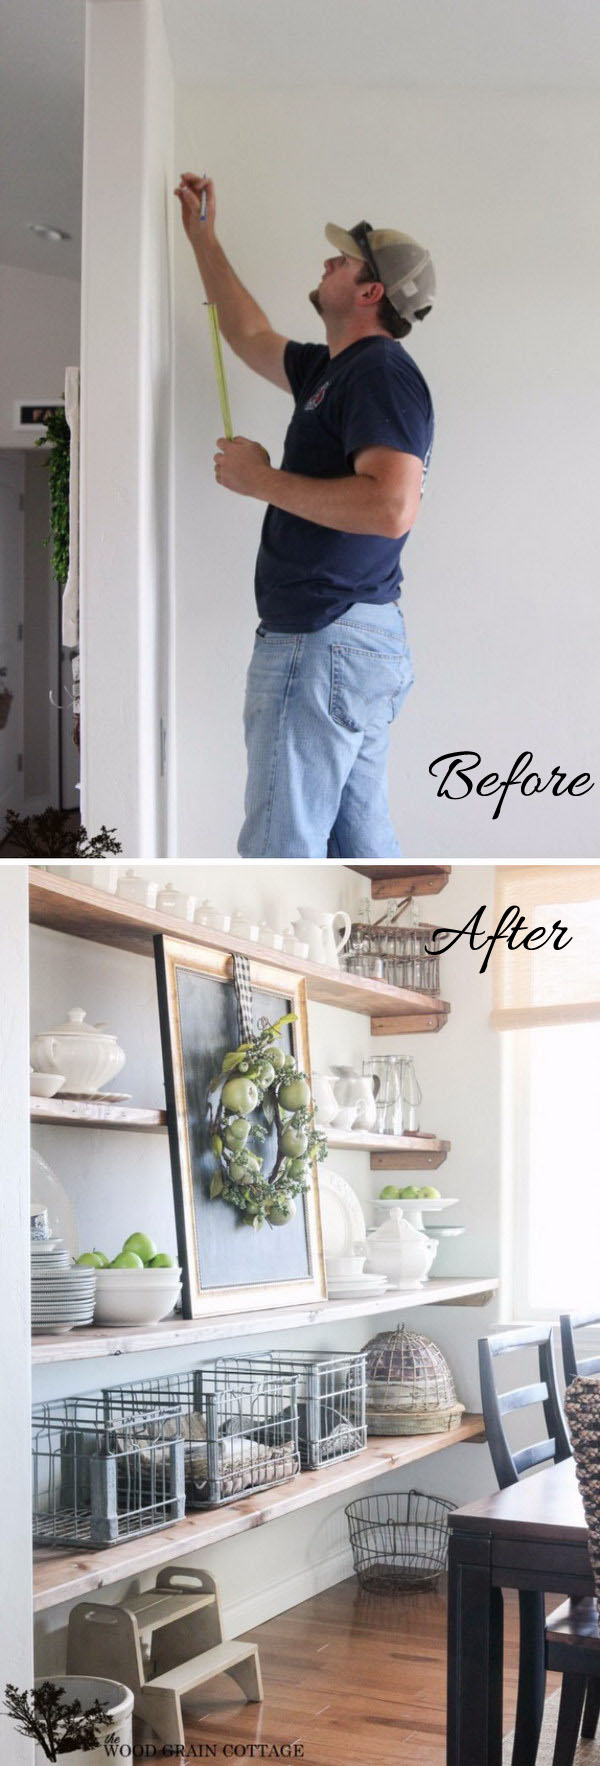 Image Result For Room Makeover Ideaa